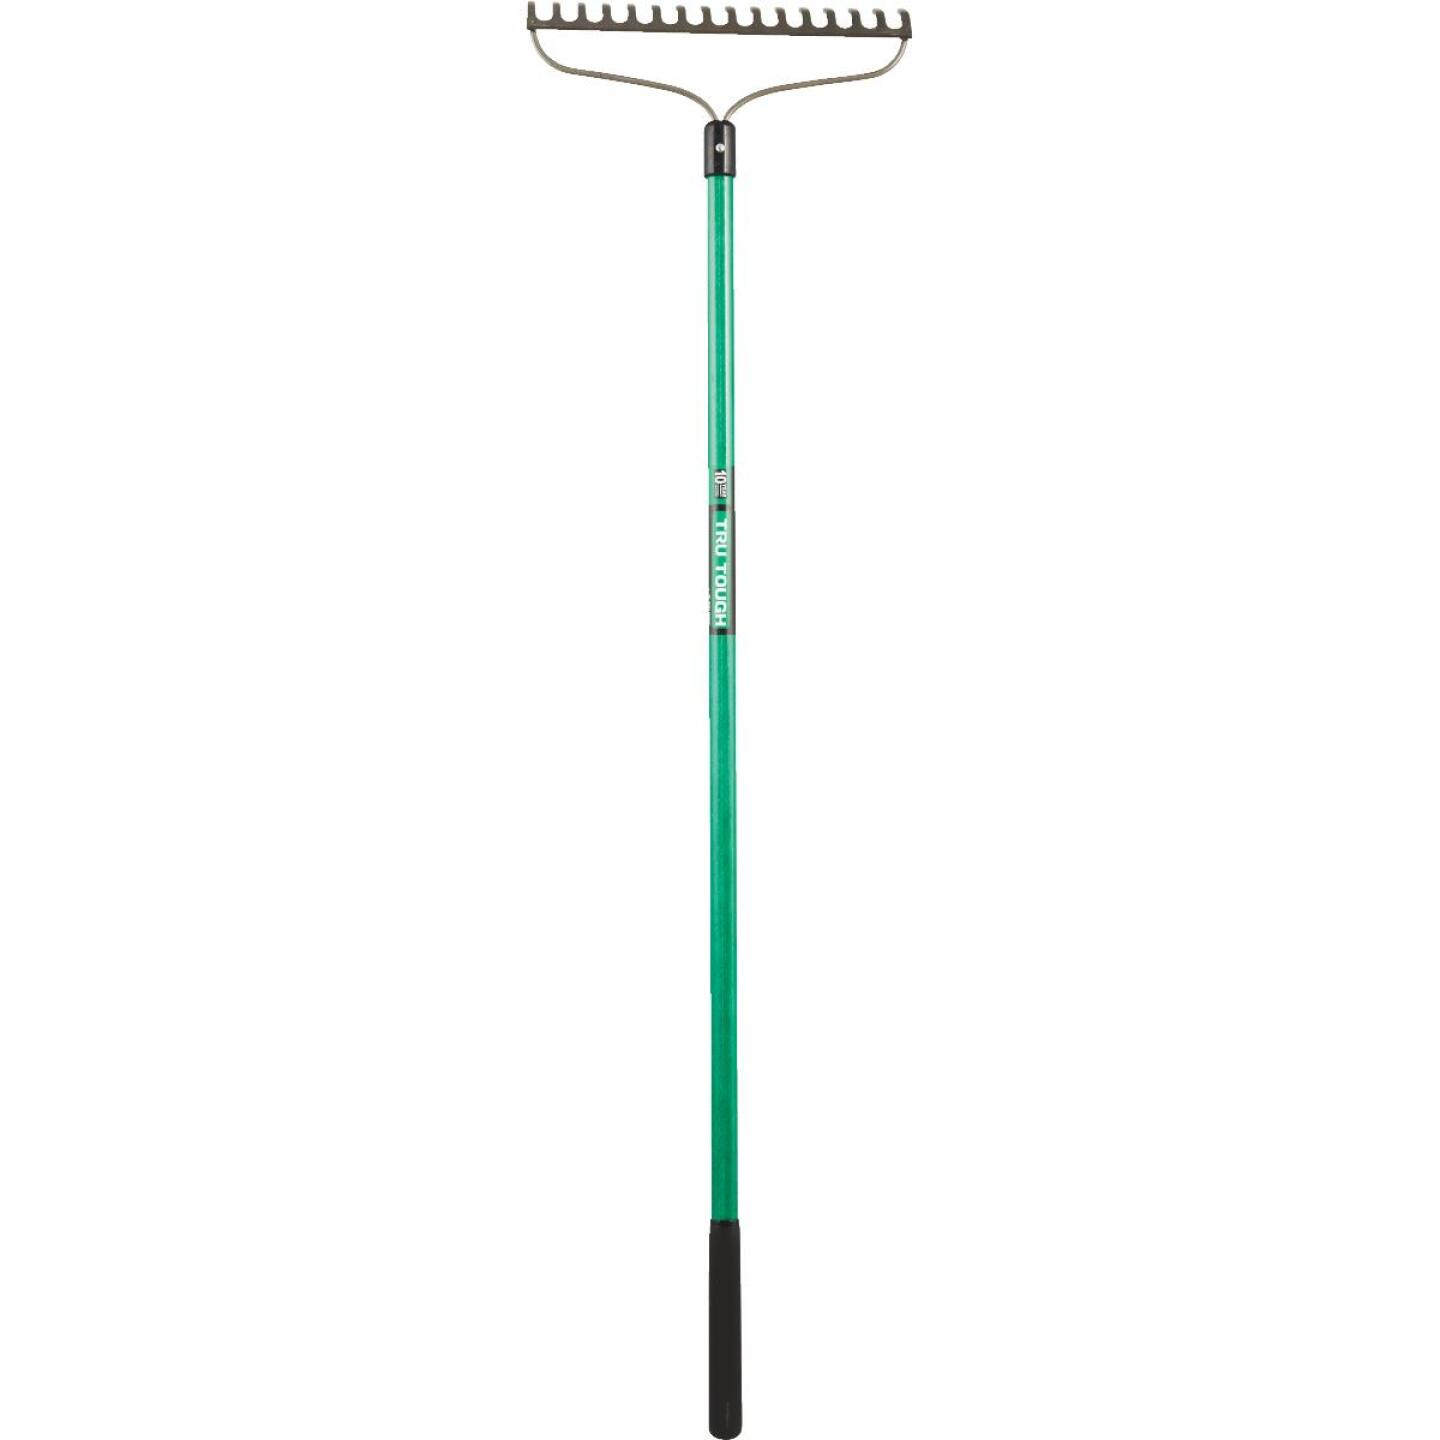 Tru Tough 15.5 In. Steel Bow Garden Rake (16-Tine) Image 3